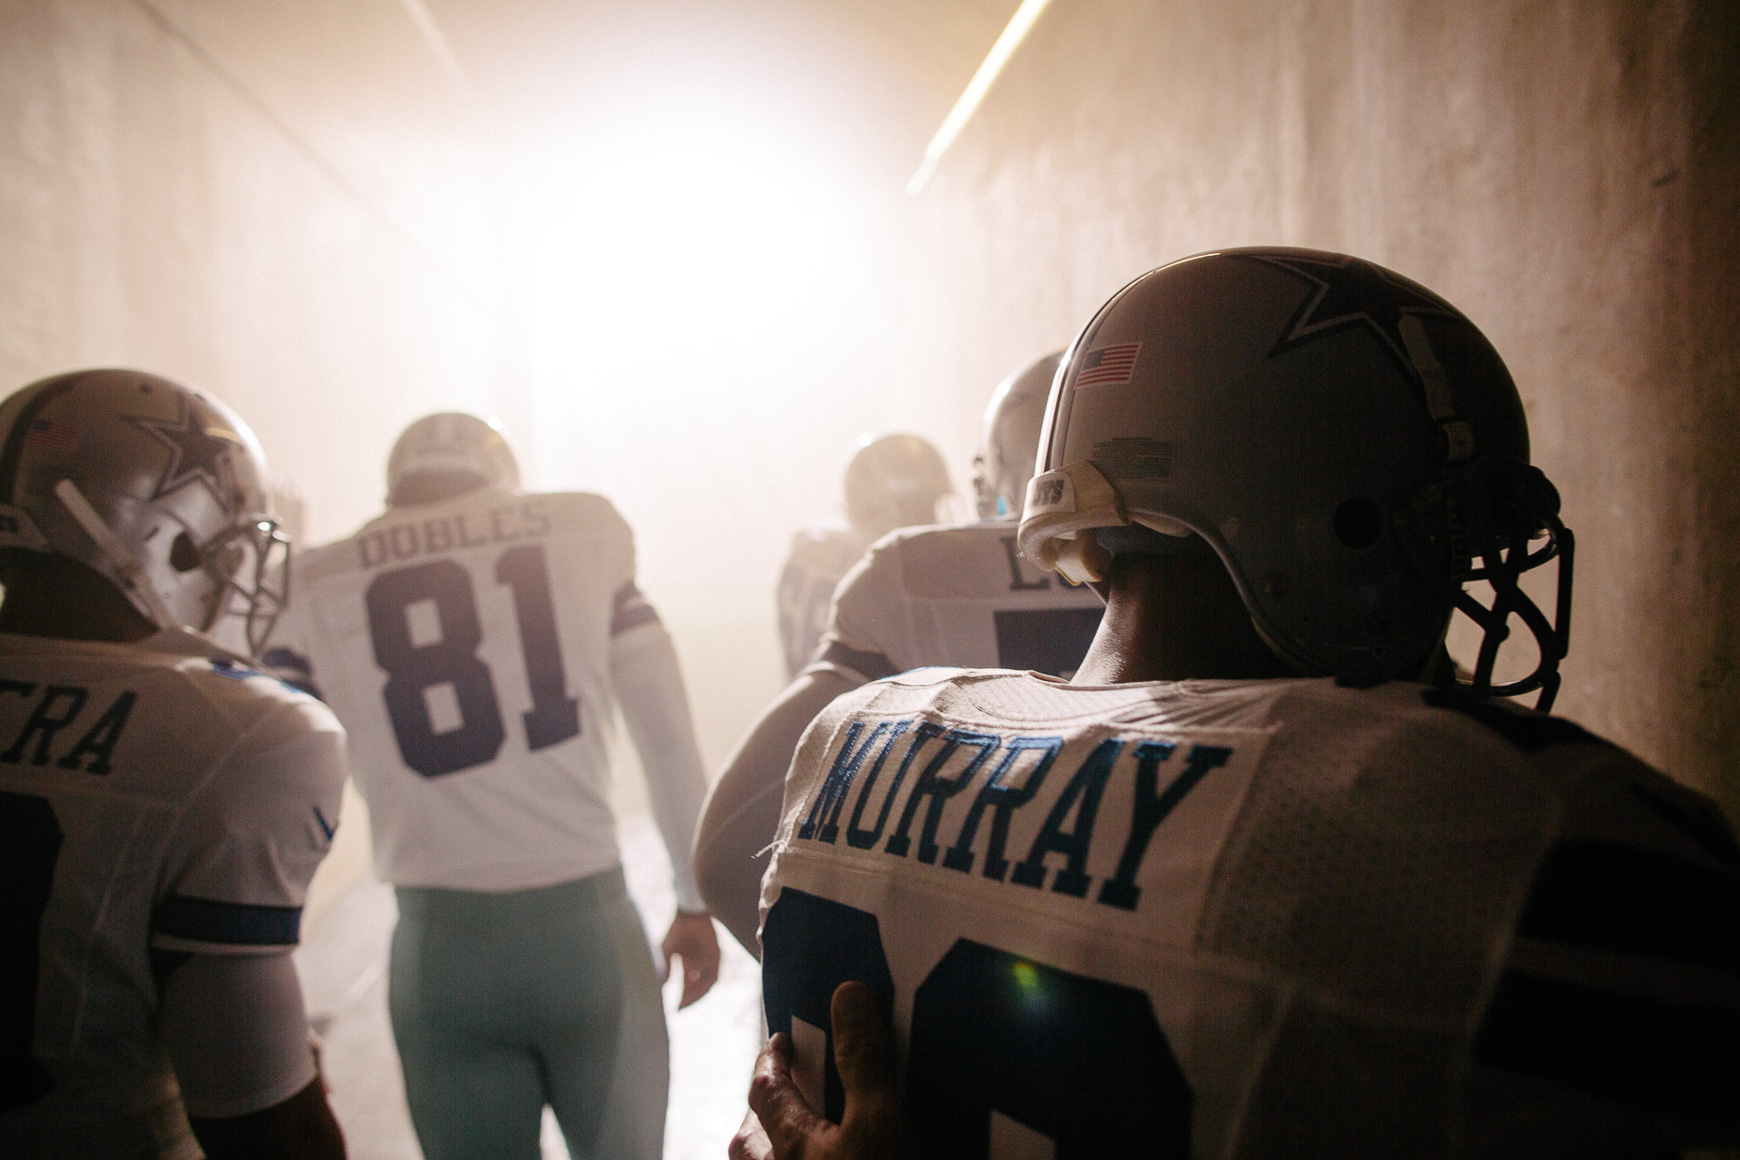 20141220_AdidasBTS_DeMarcoMurray_017_Web